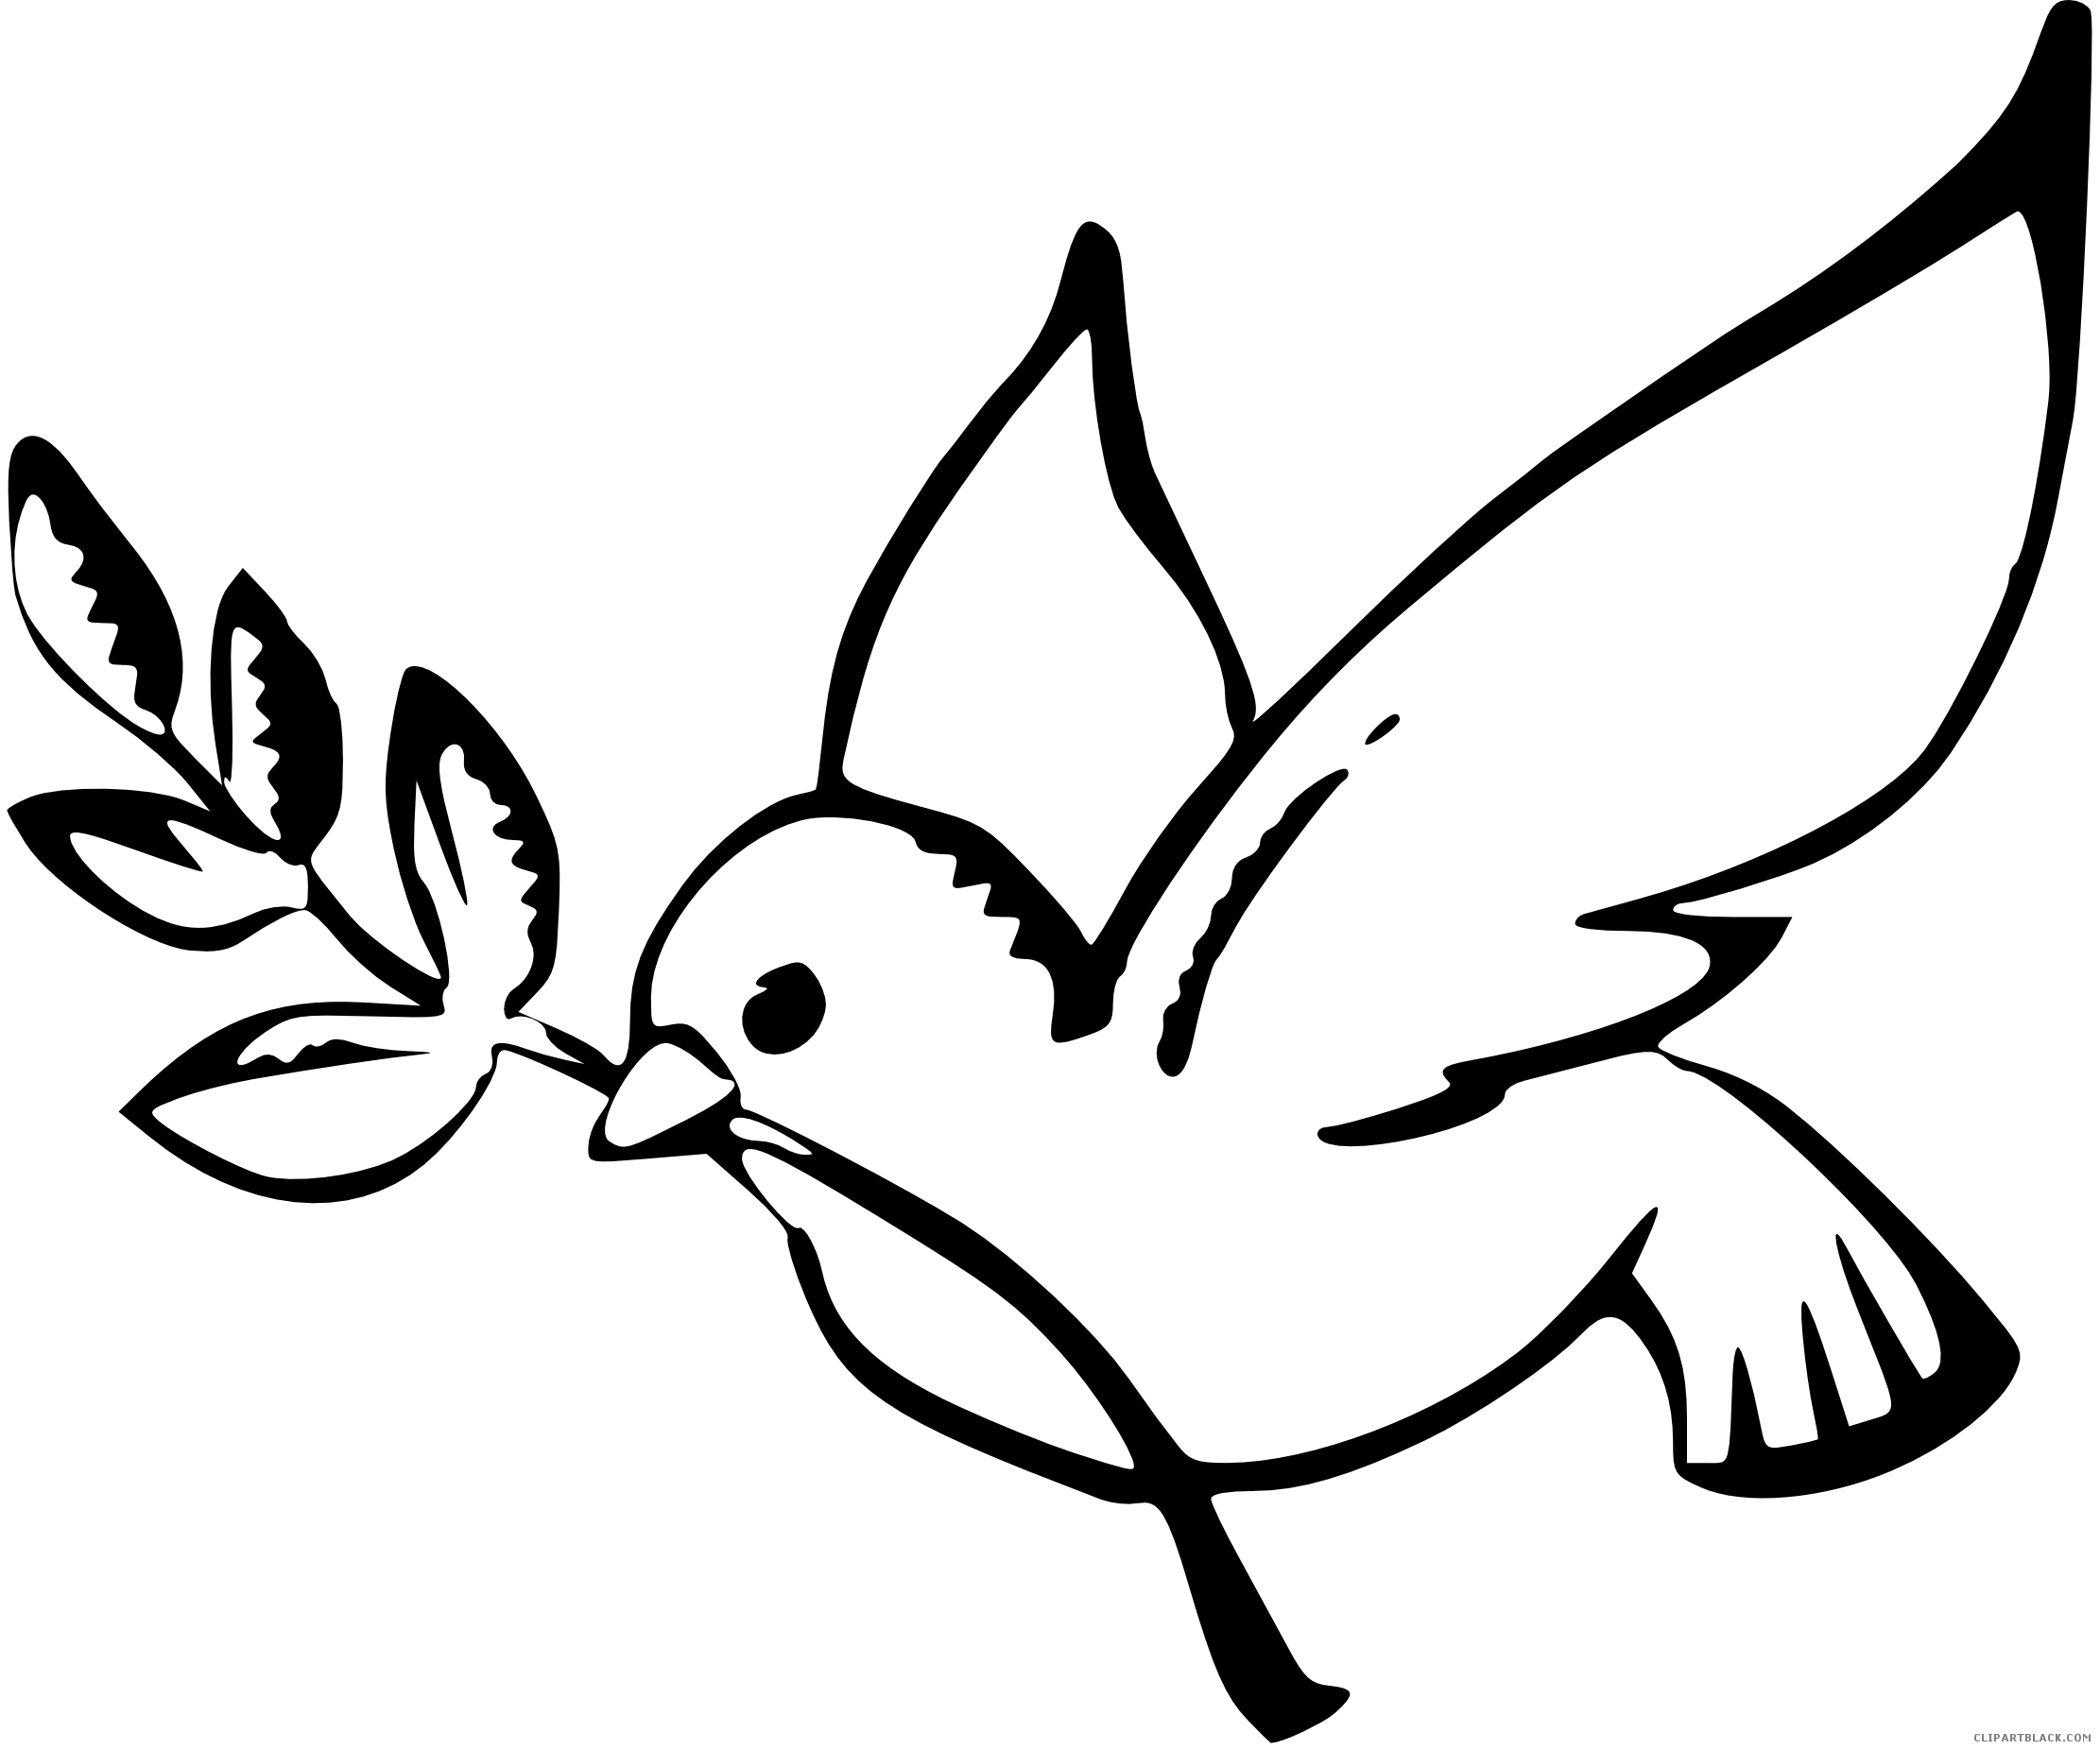 Page of clipartblack com. Funeral clipart dove